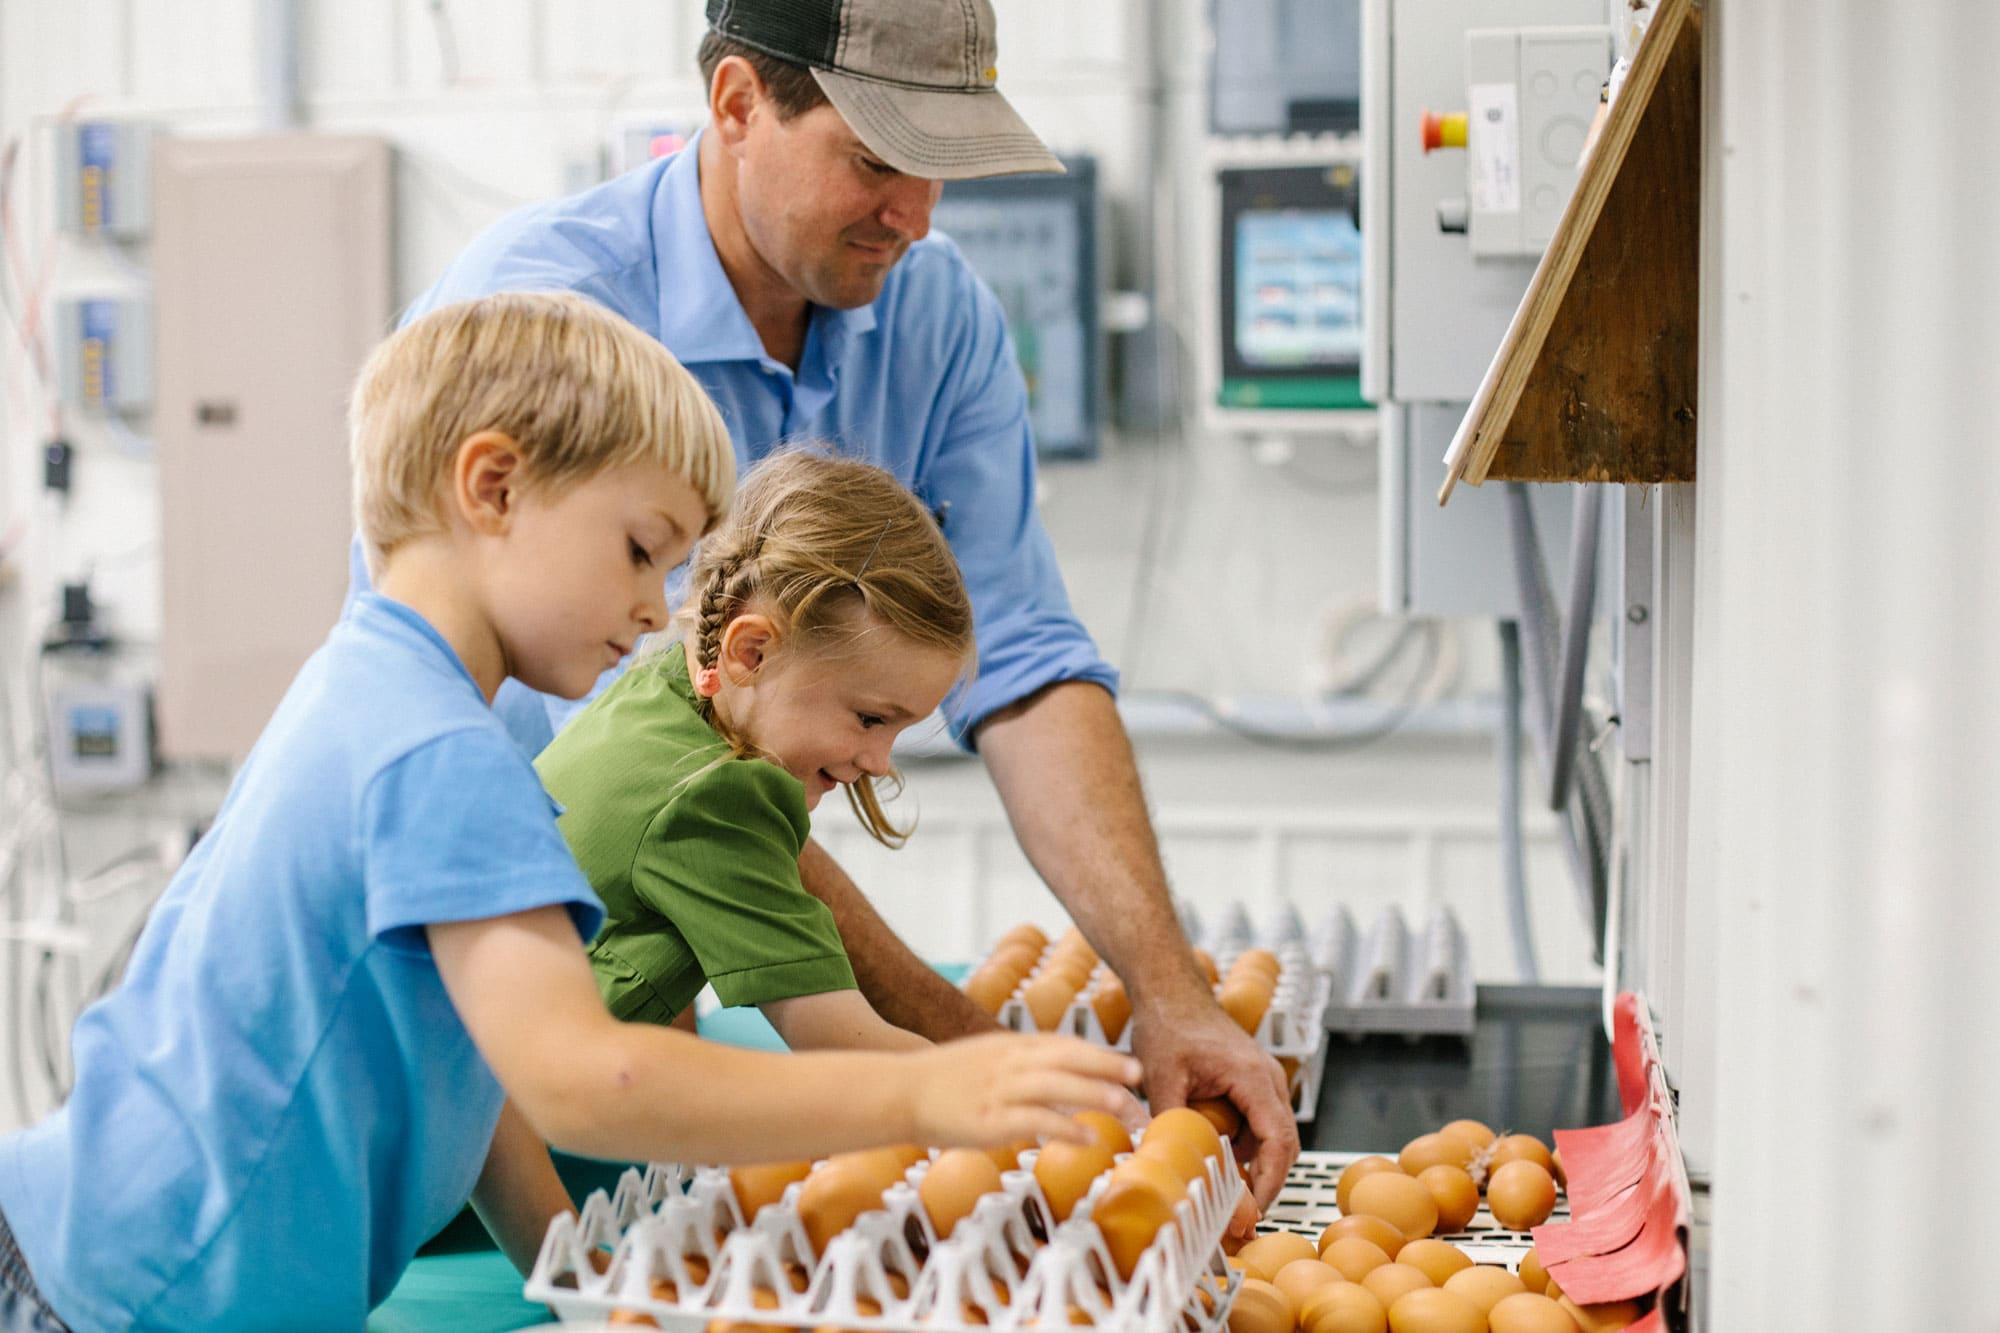 A male farmer helping a boy and a girl put eggs in cartons in a very clean, high tech looking room.